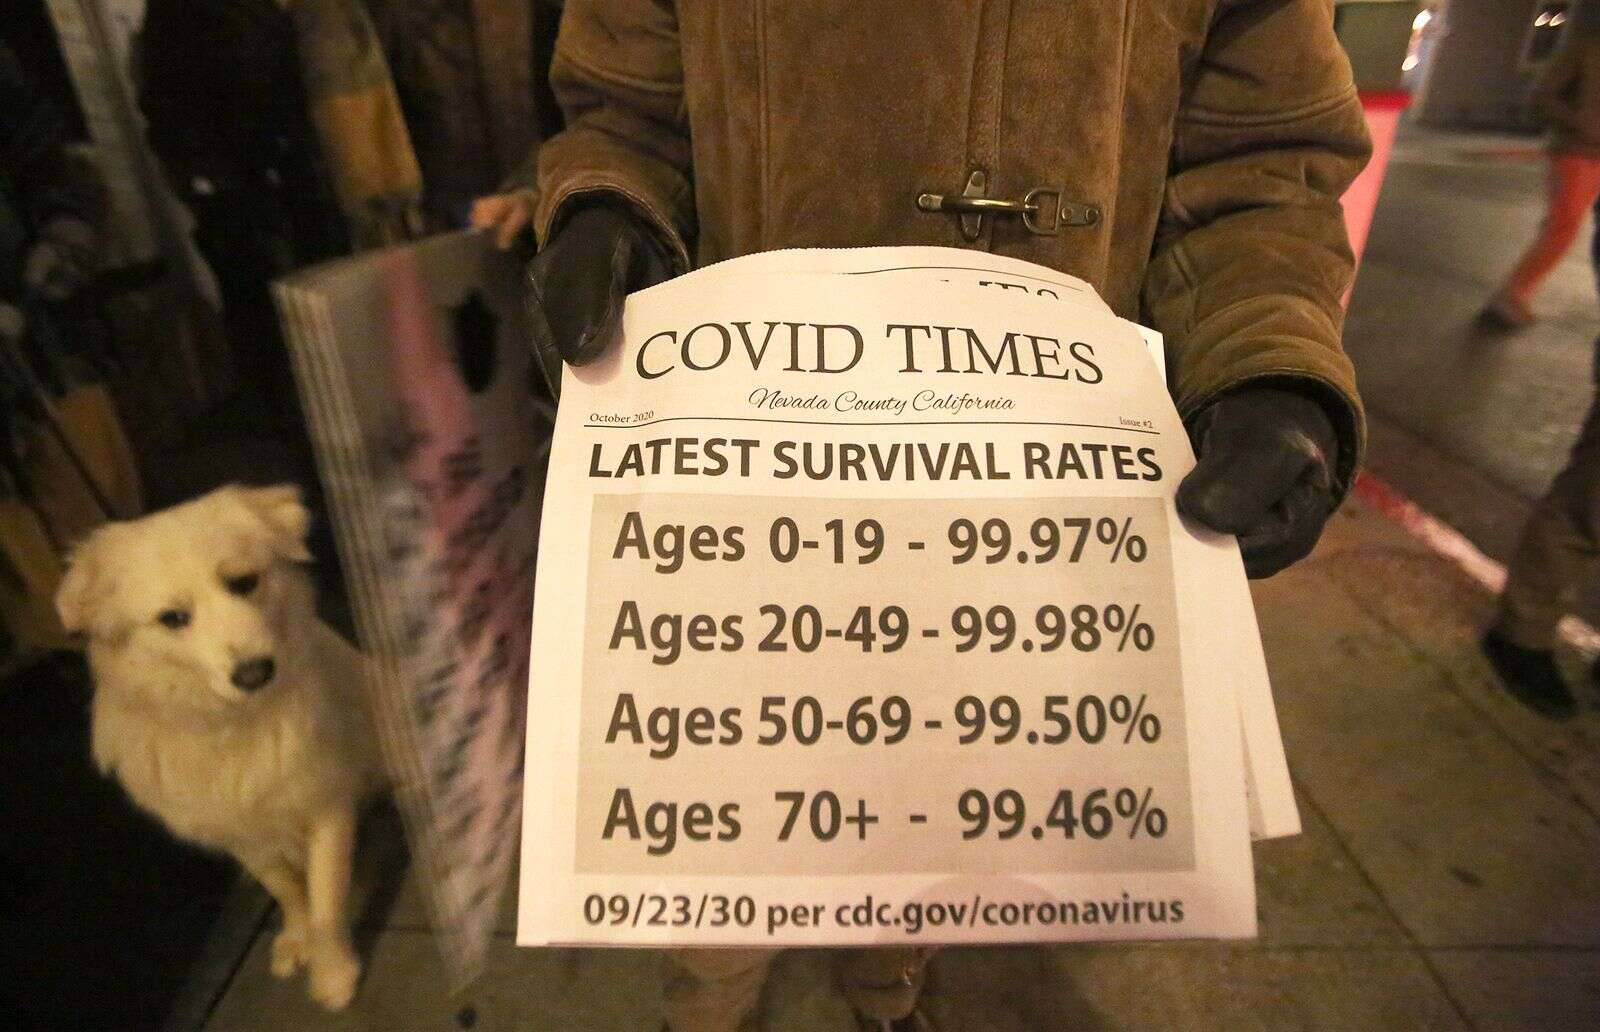 A copy of the Covid Times, a Nevada County independent publication, is distributed during Friday's Nevada City Revival protest of the regional stay at home orders.